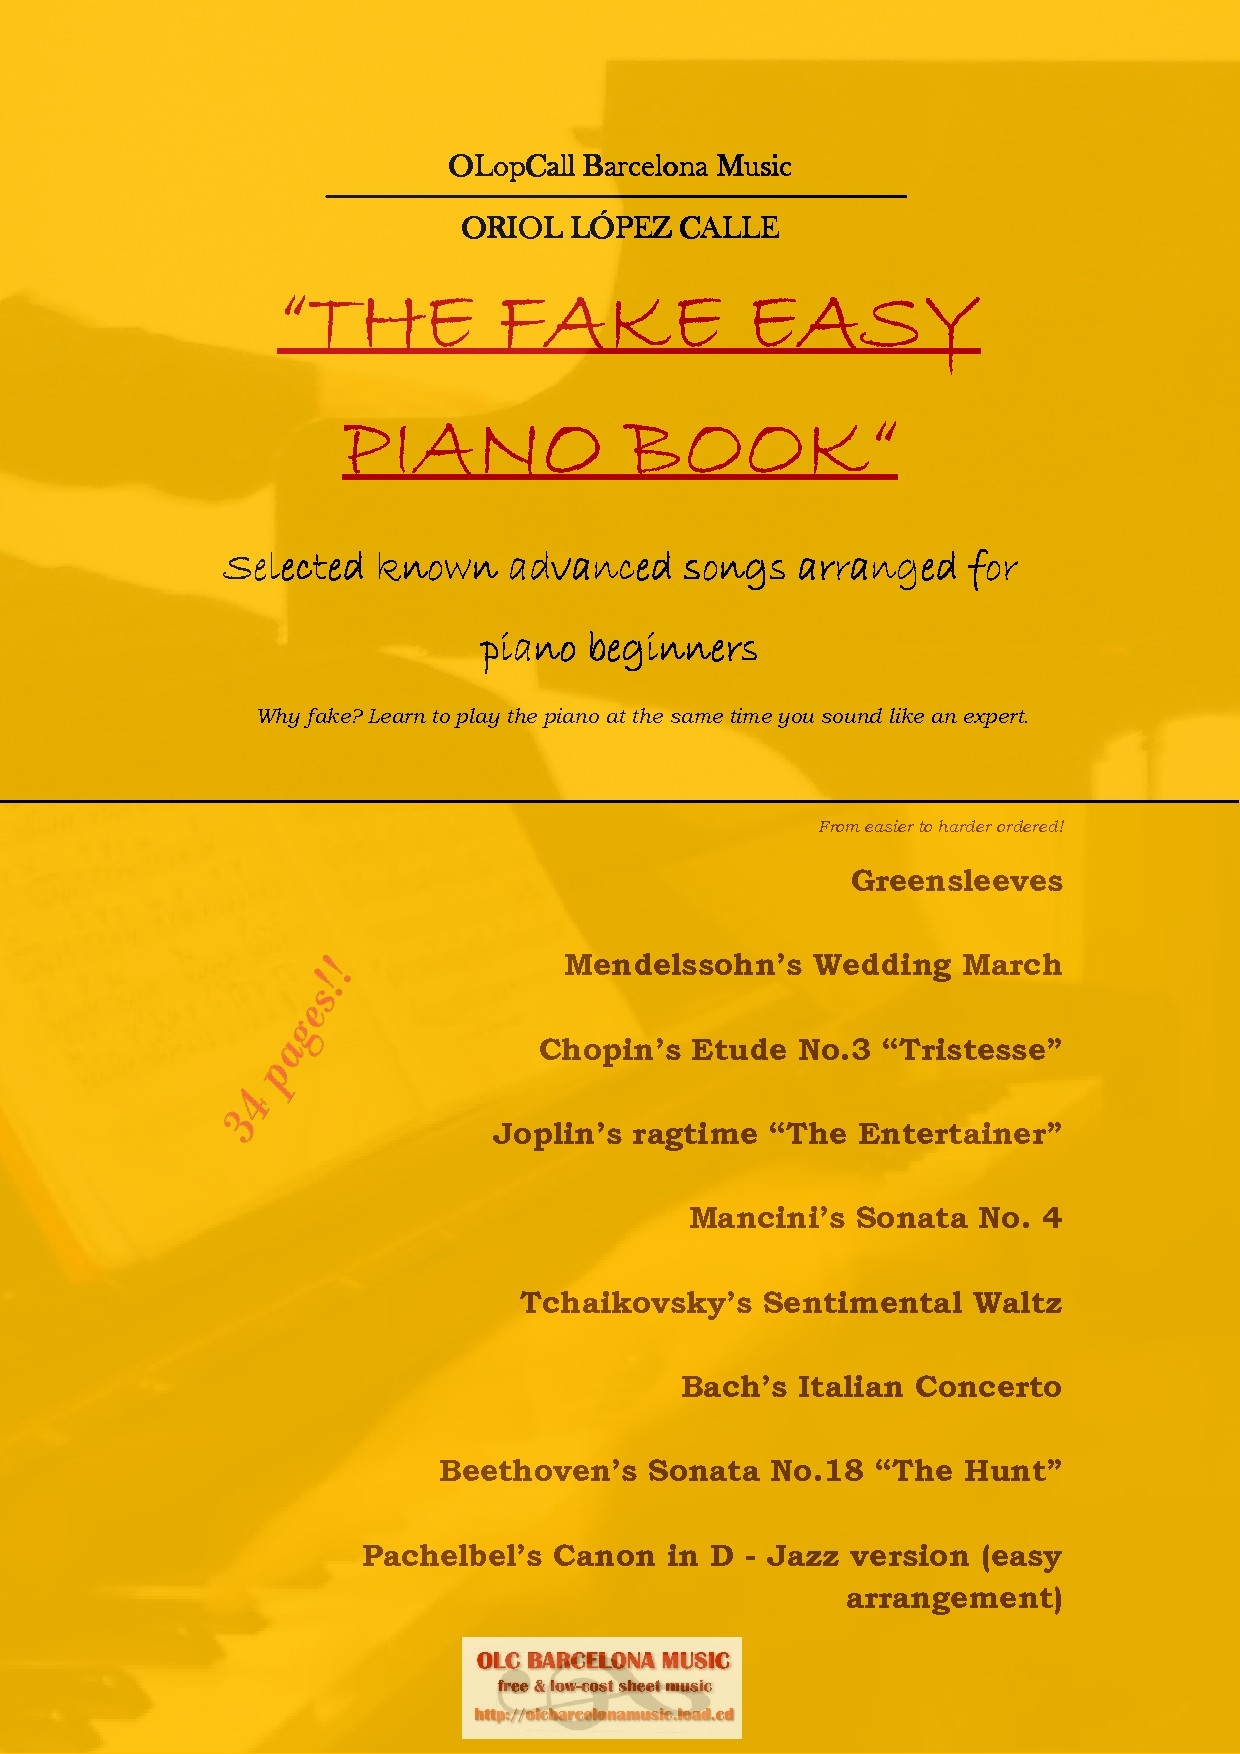 how to play piano from a fake book